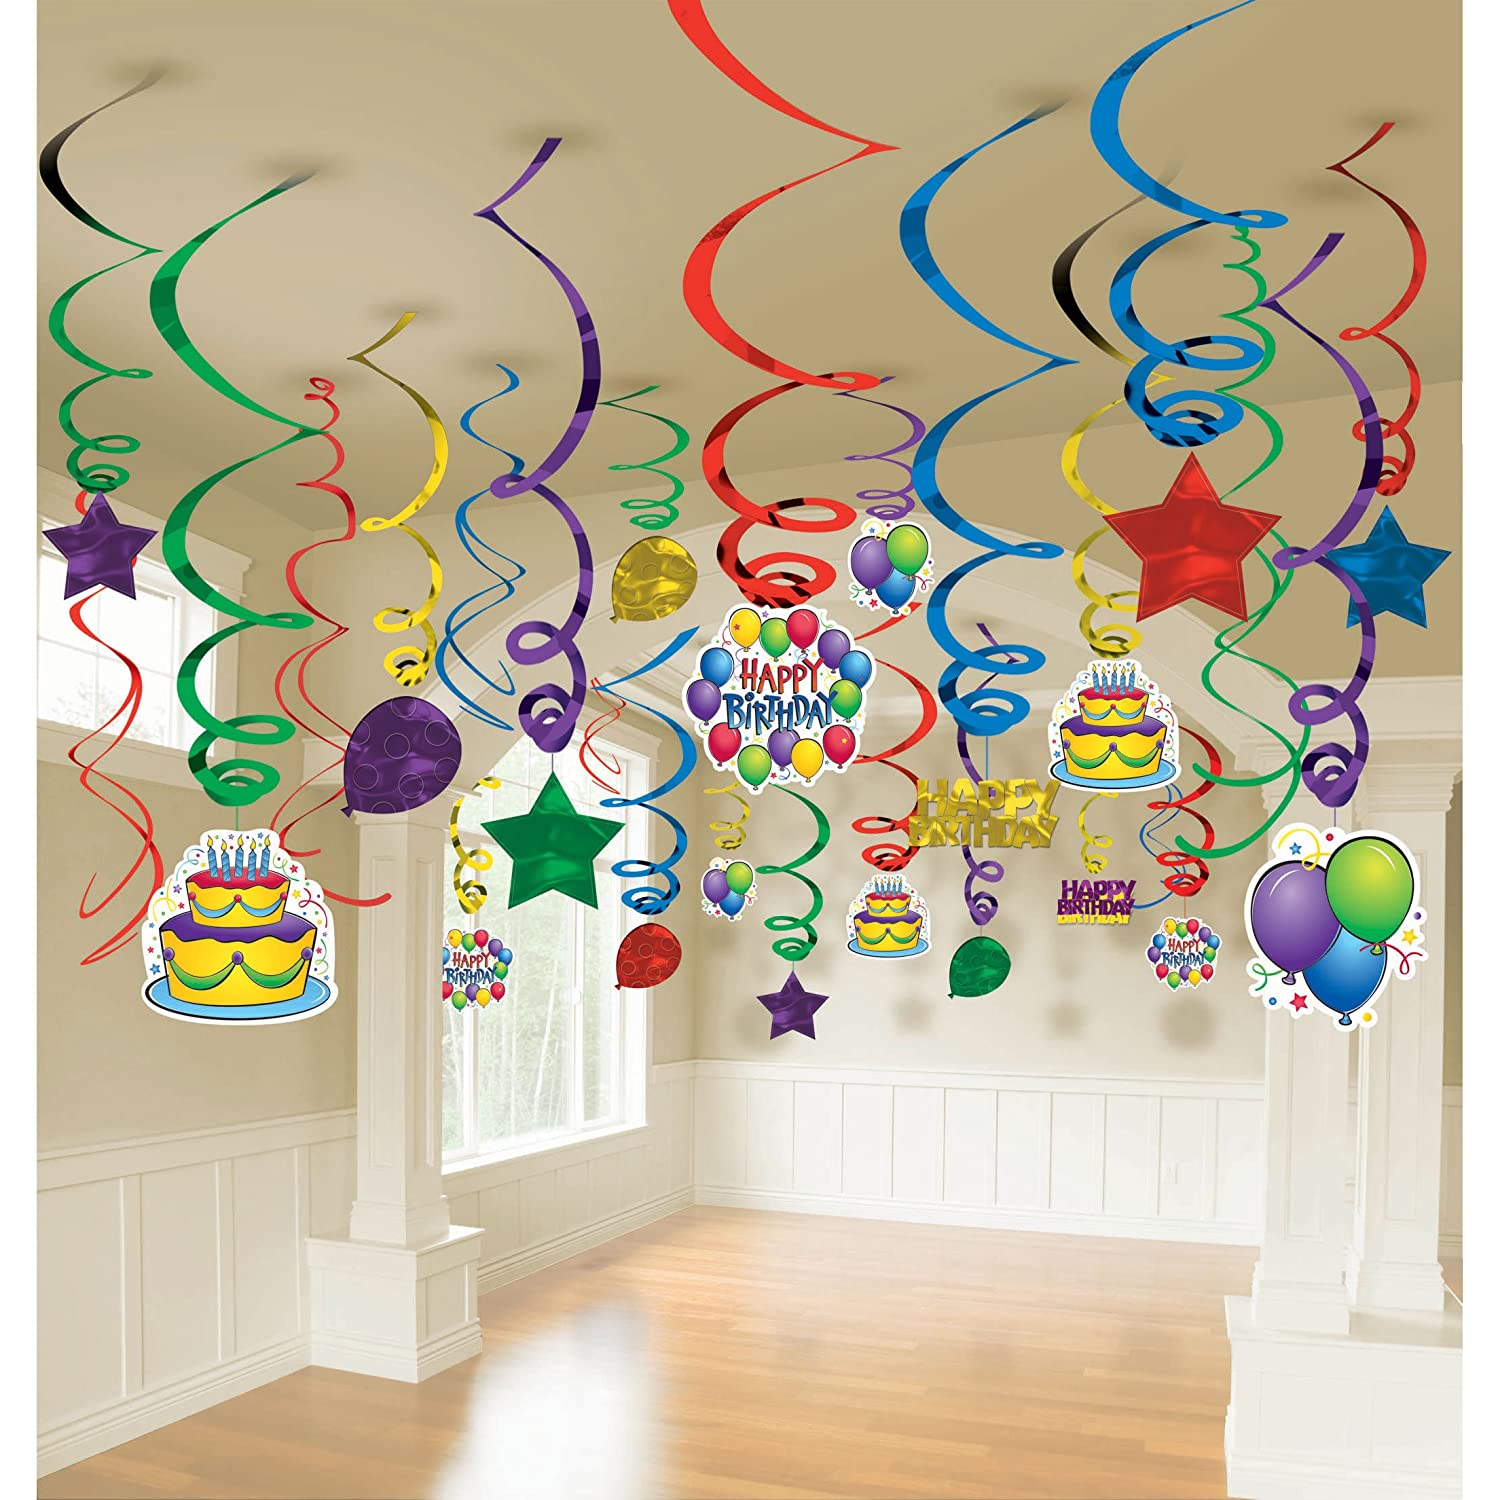 Balloon Fun Mega Value Pack Swirl Decorations 50 Party Supplies Amazon In Toys Games